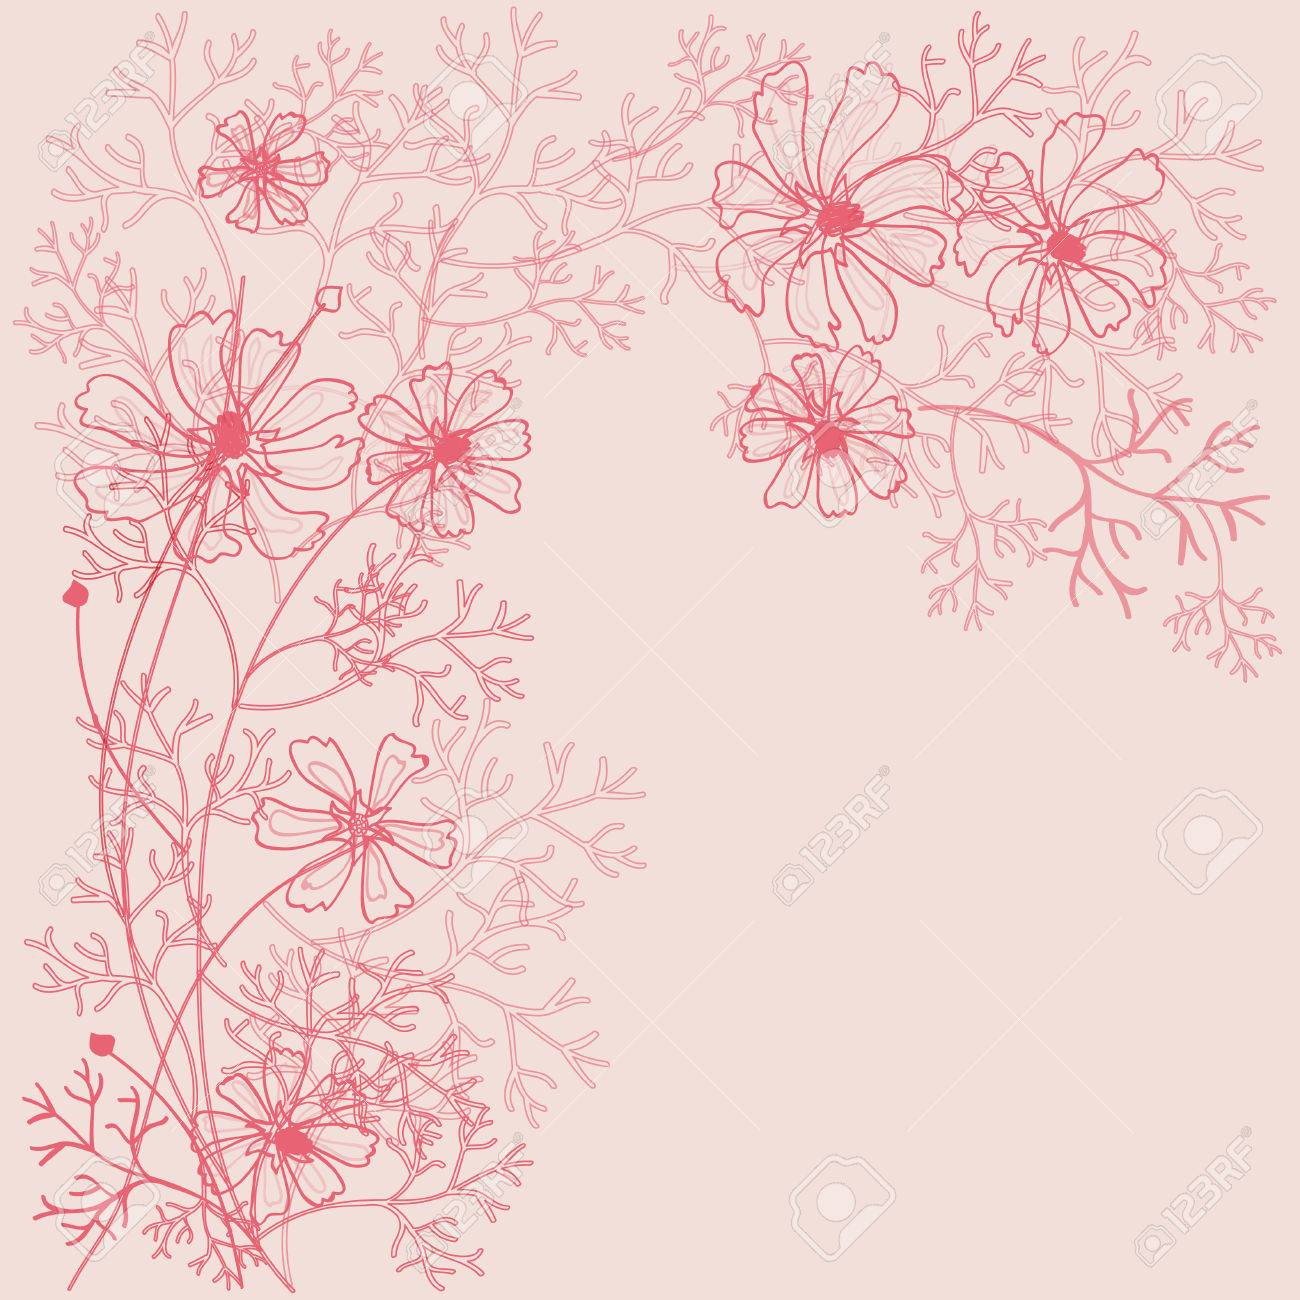 Beautiful decorative background with flowers outlines. Stock Vector - 8547253